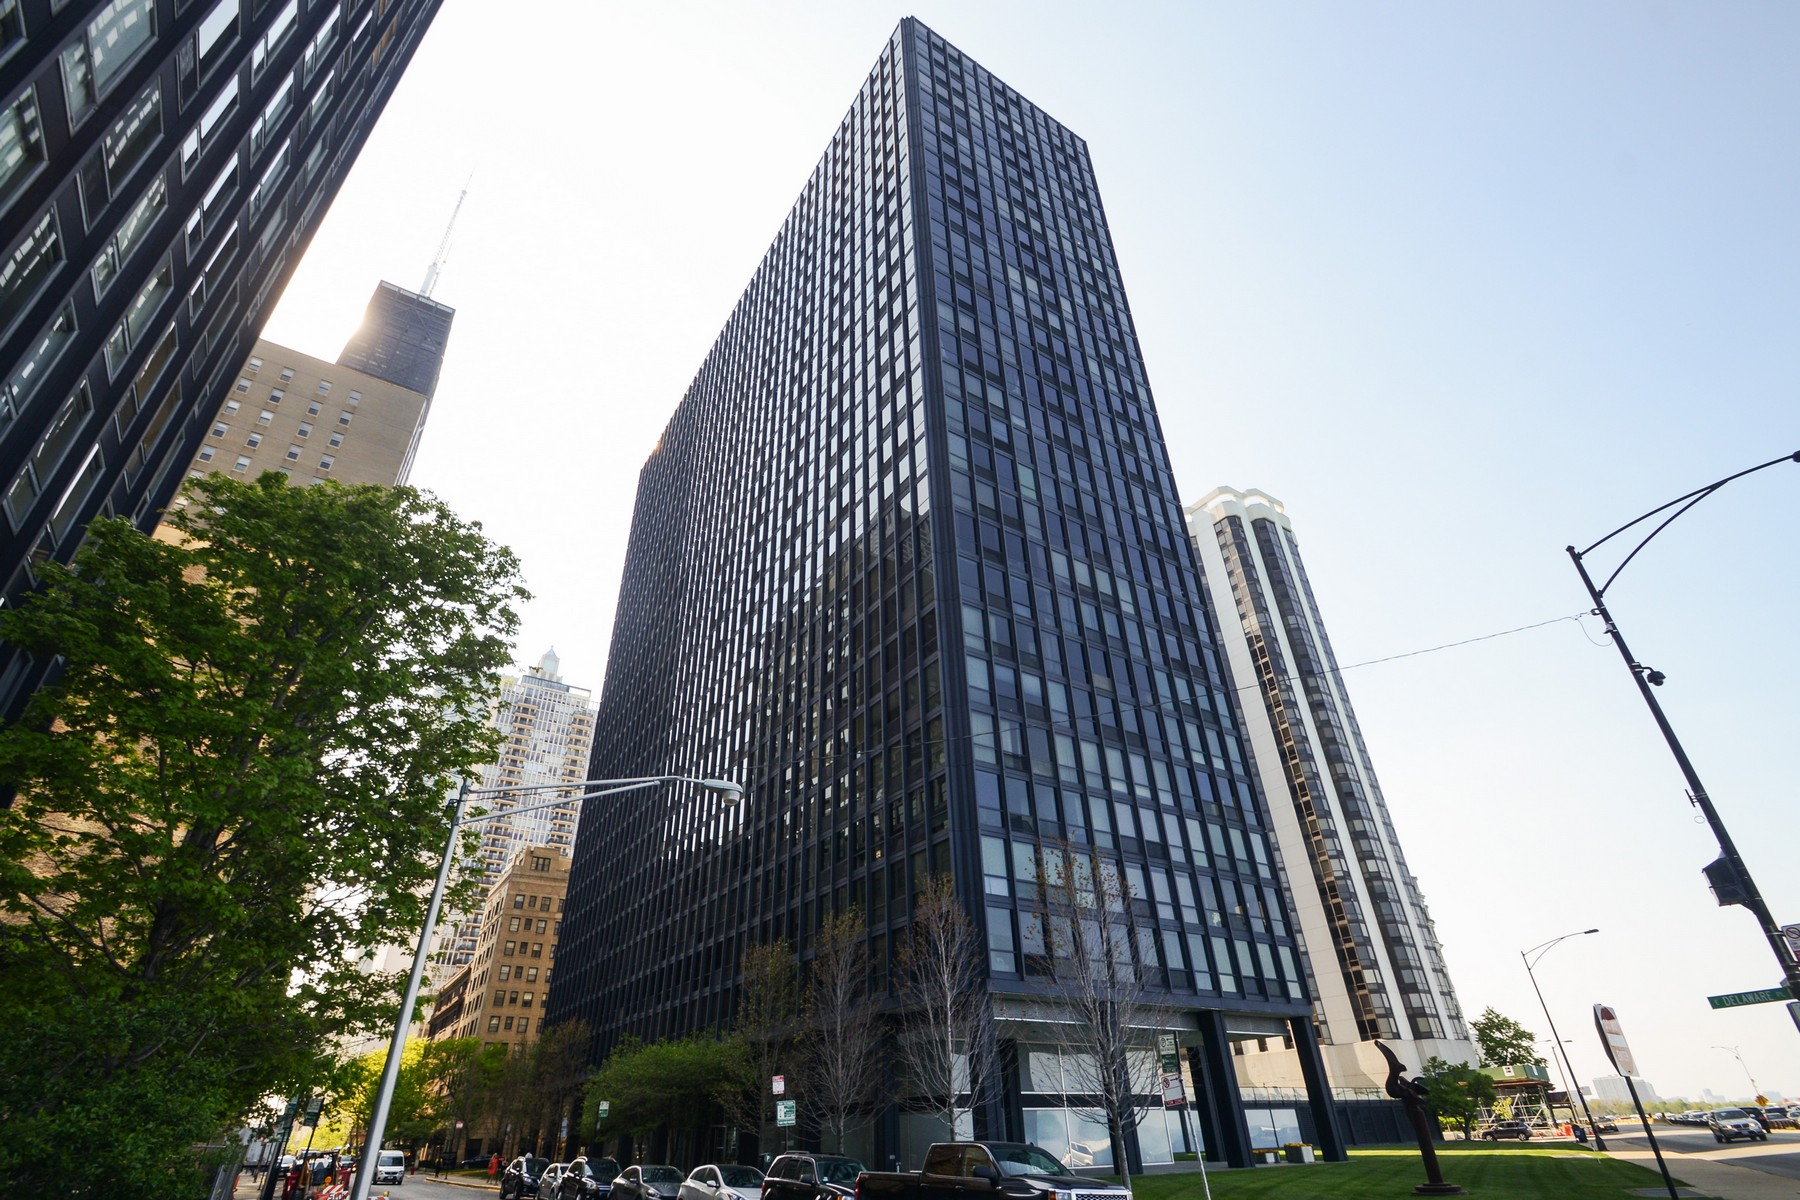 Частный односемейный дом для того Продажа на Amazing High Floor Unit in Miles Van Der Rohe Building 900 N Lake Shore Drive Unit 2212 Near North Side, Chicago, Иллинойс, 60611 Соединенные Штаты